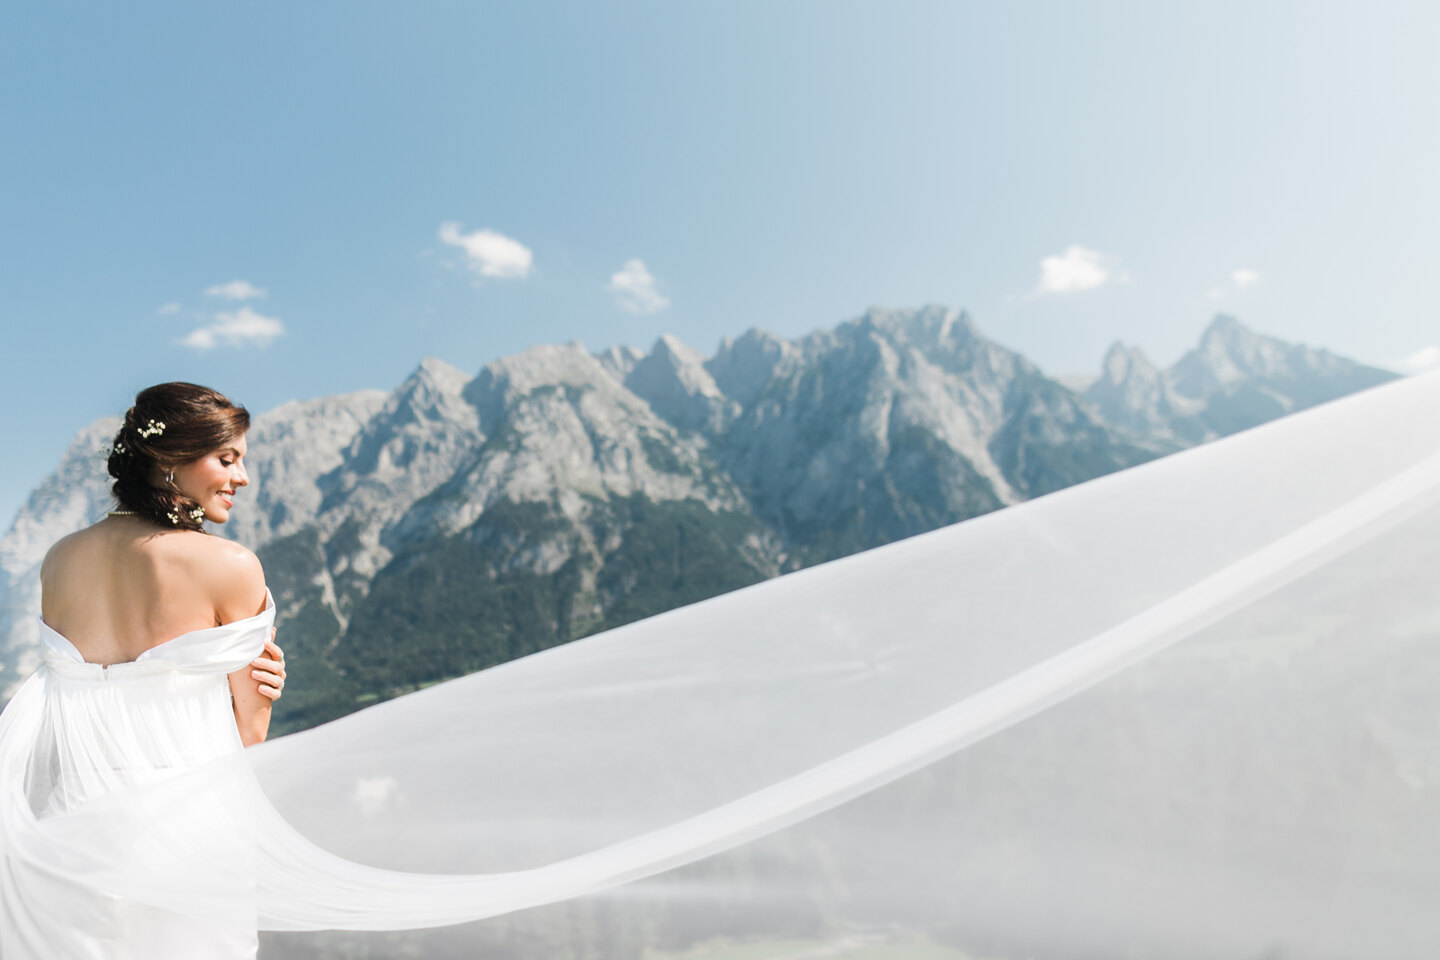 Couple photoshoot in Italy: the bride against the backdrop of luxurious mountains, the plume of her dress is widely dispelled by the wind, thereby emphasizing her fragile figure